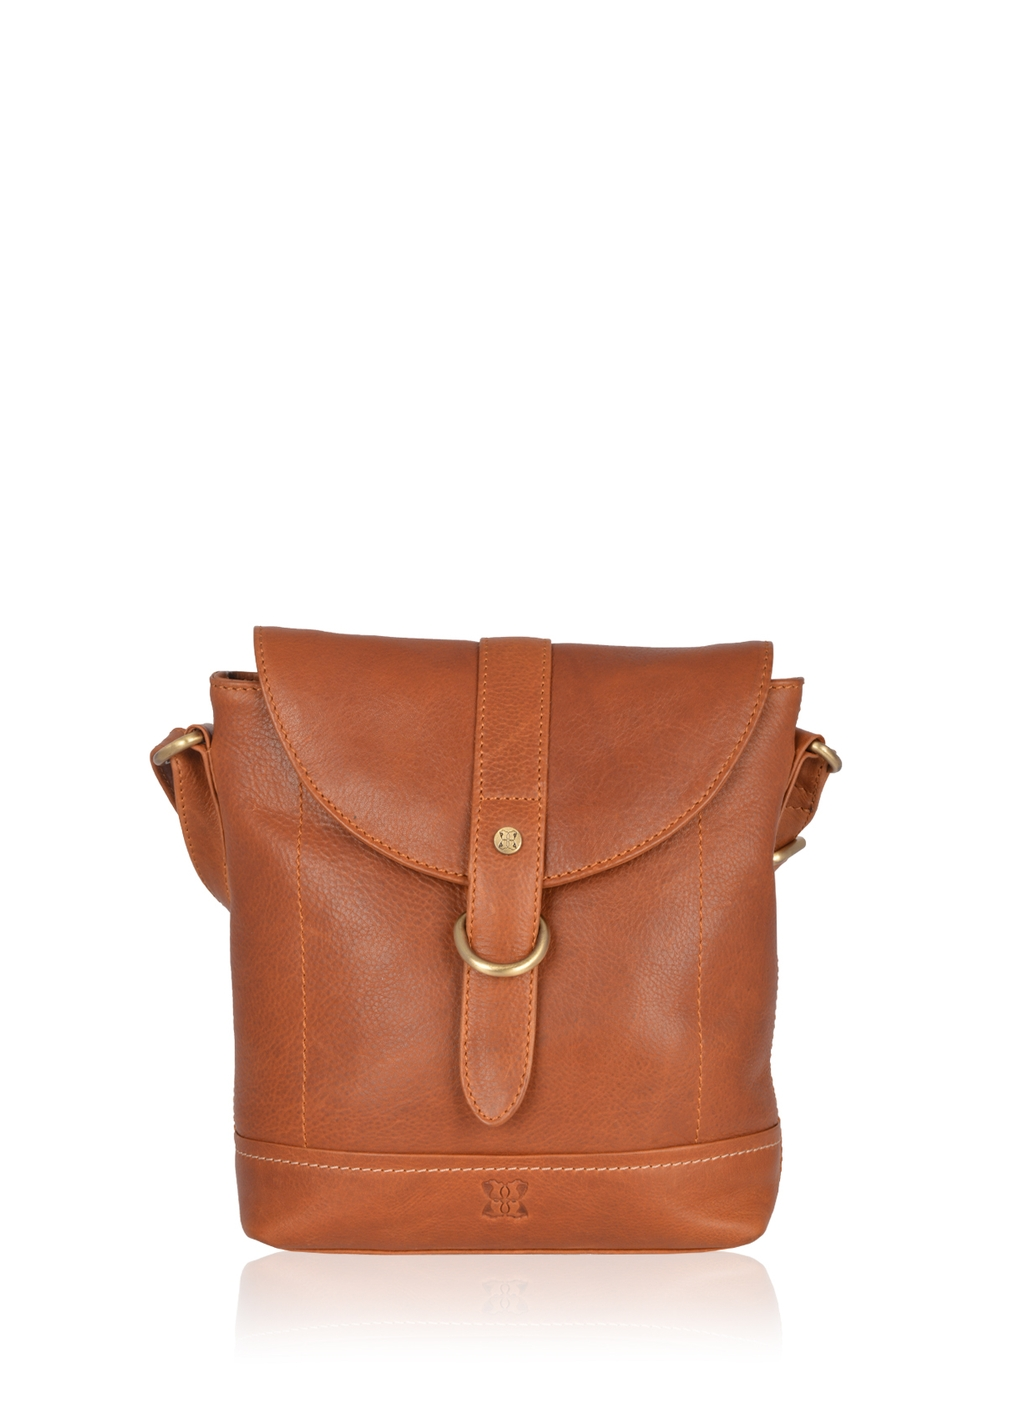 Allonby Flapover Leather Cross Body Bag in Tan